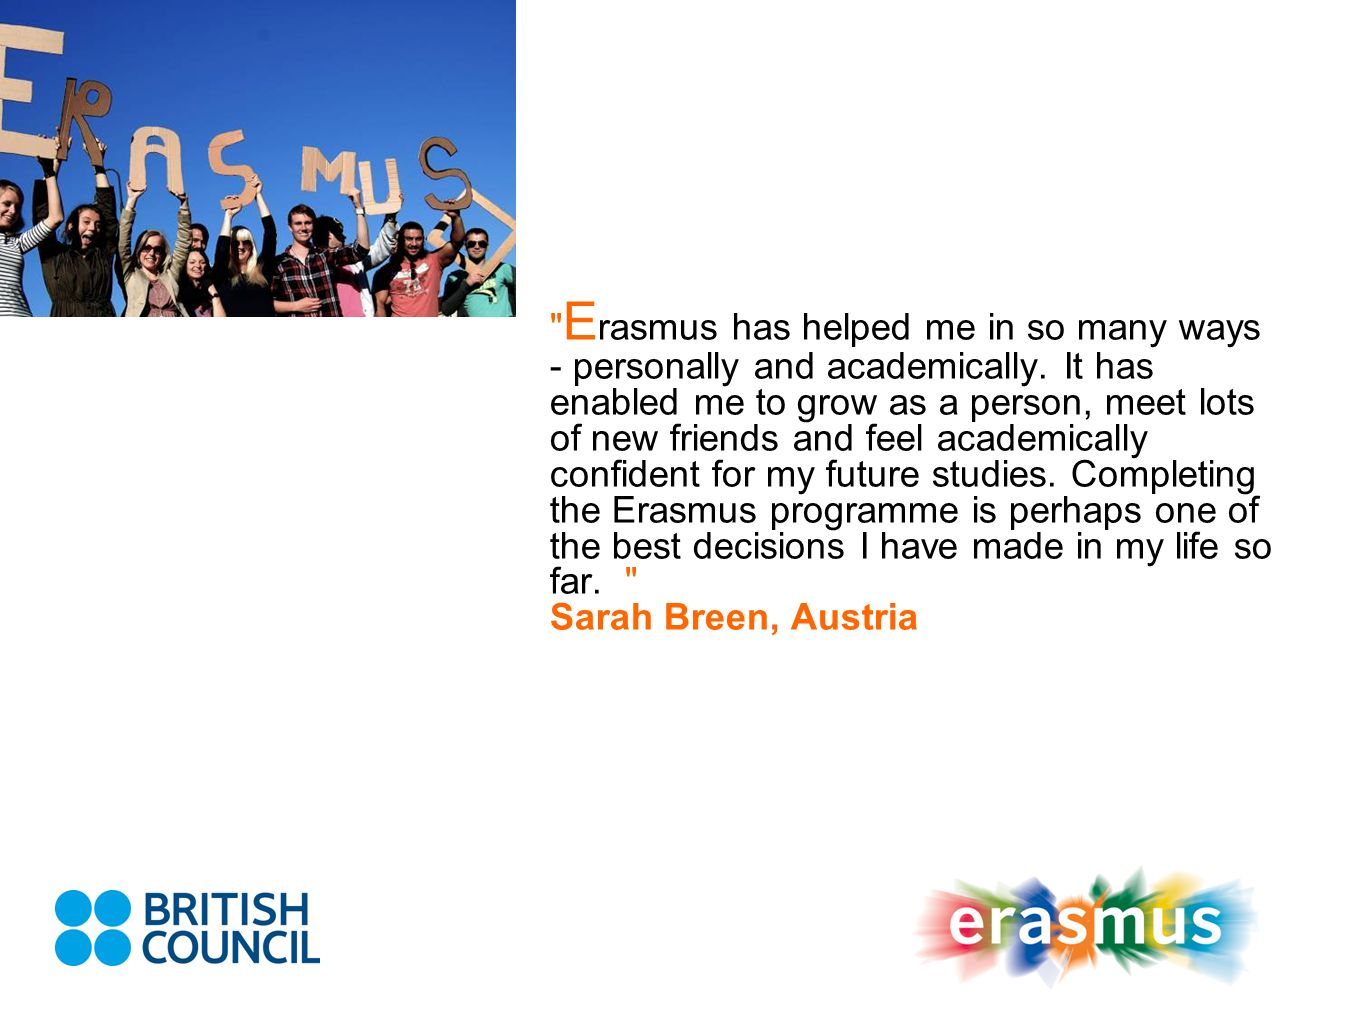 Erasmus has helped me in so many ways - personally and academically